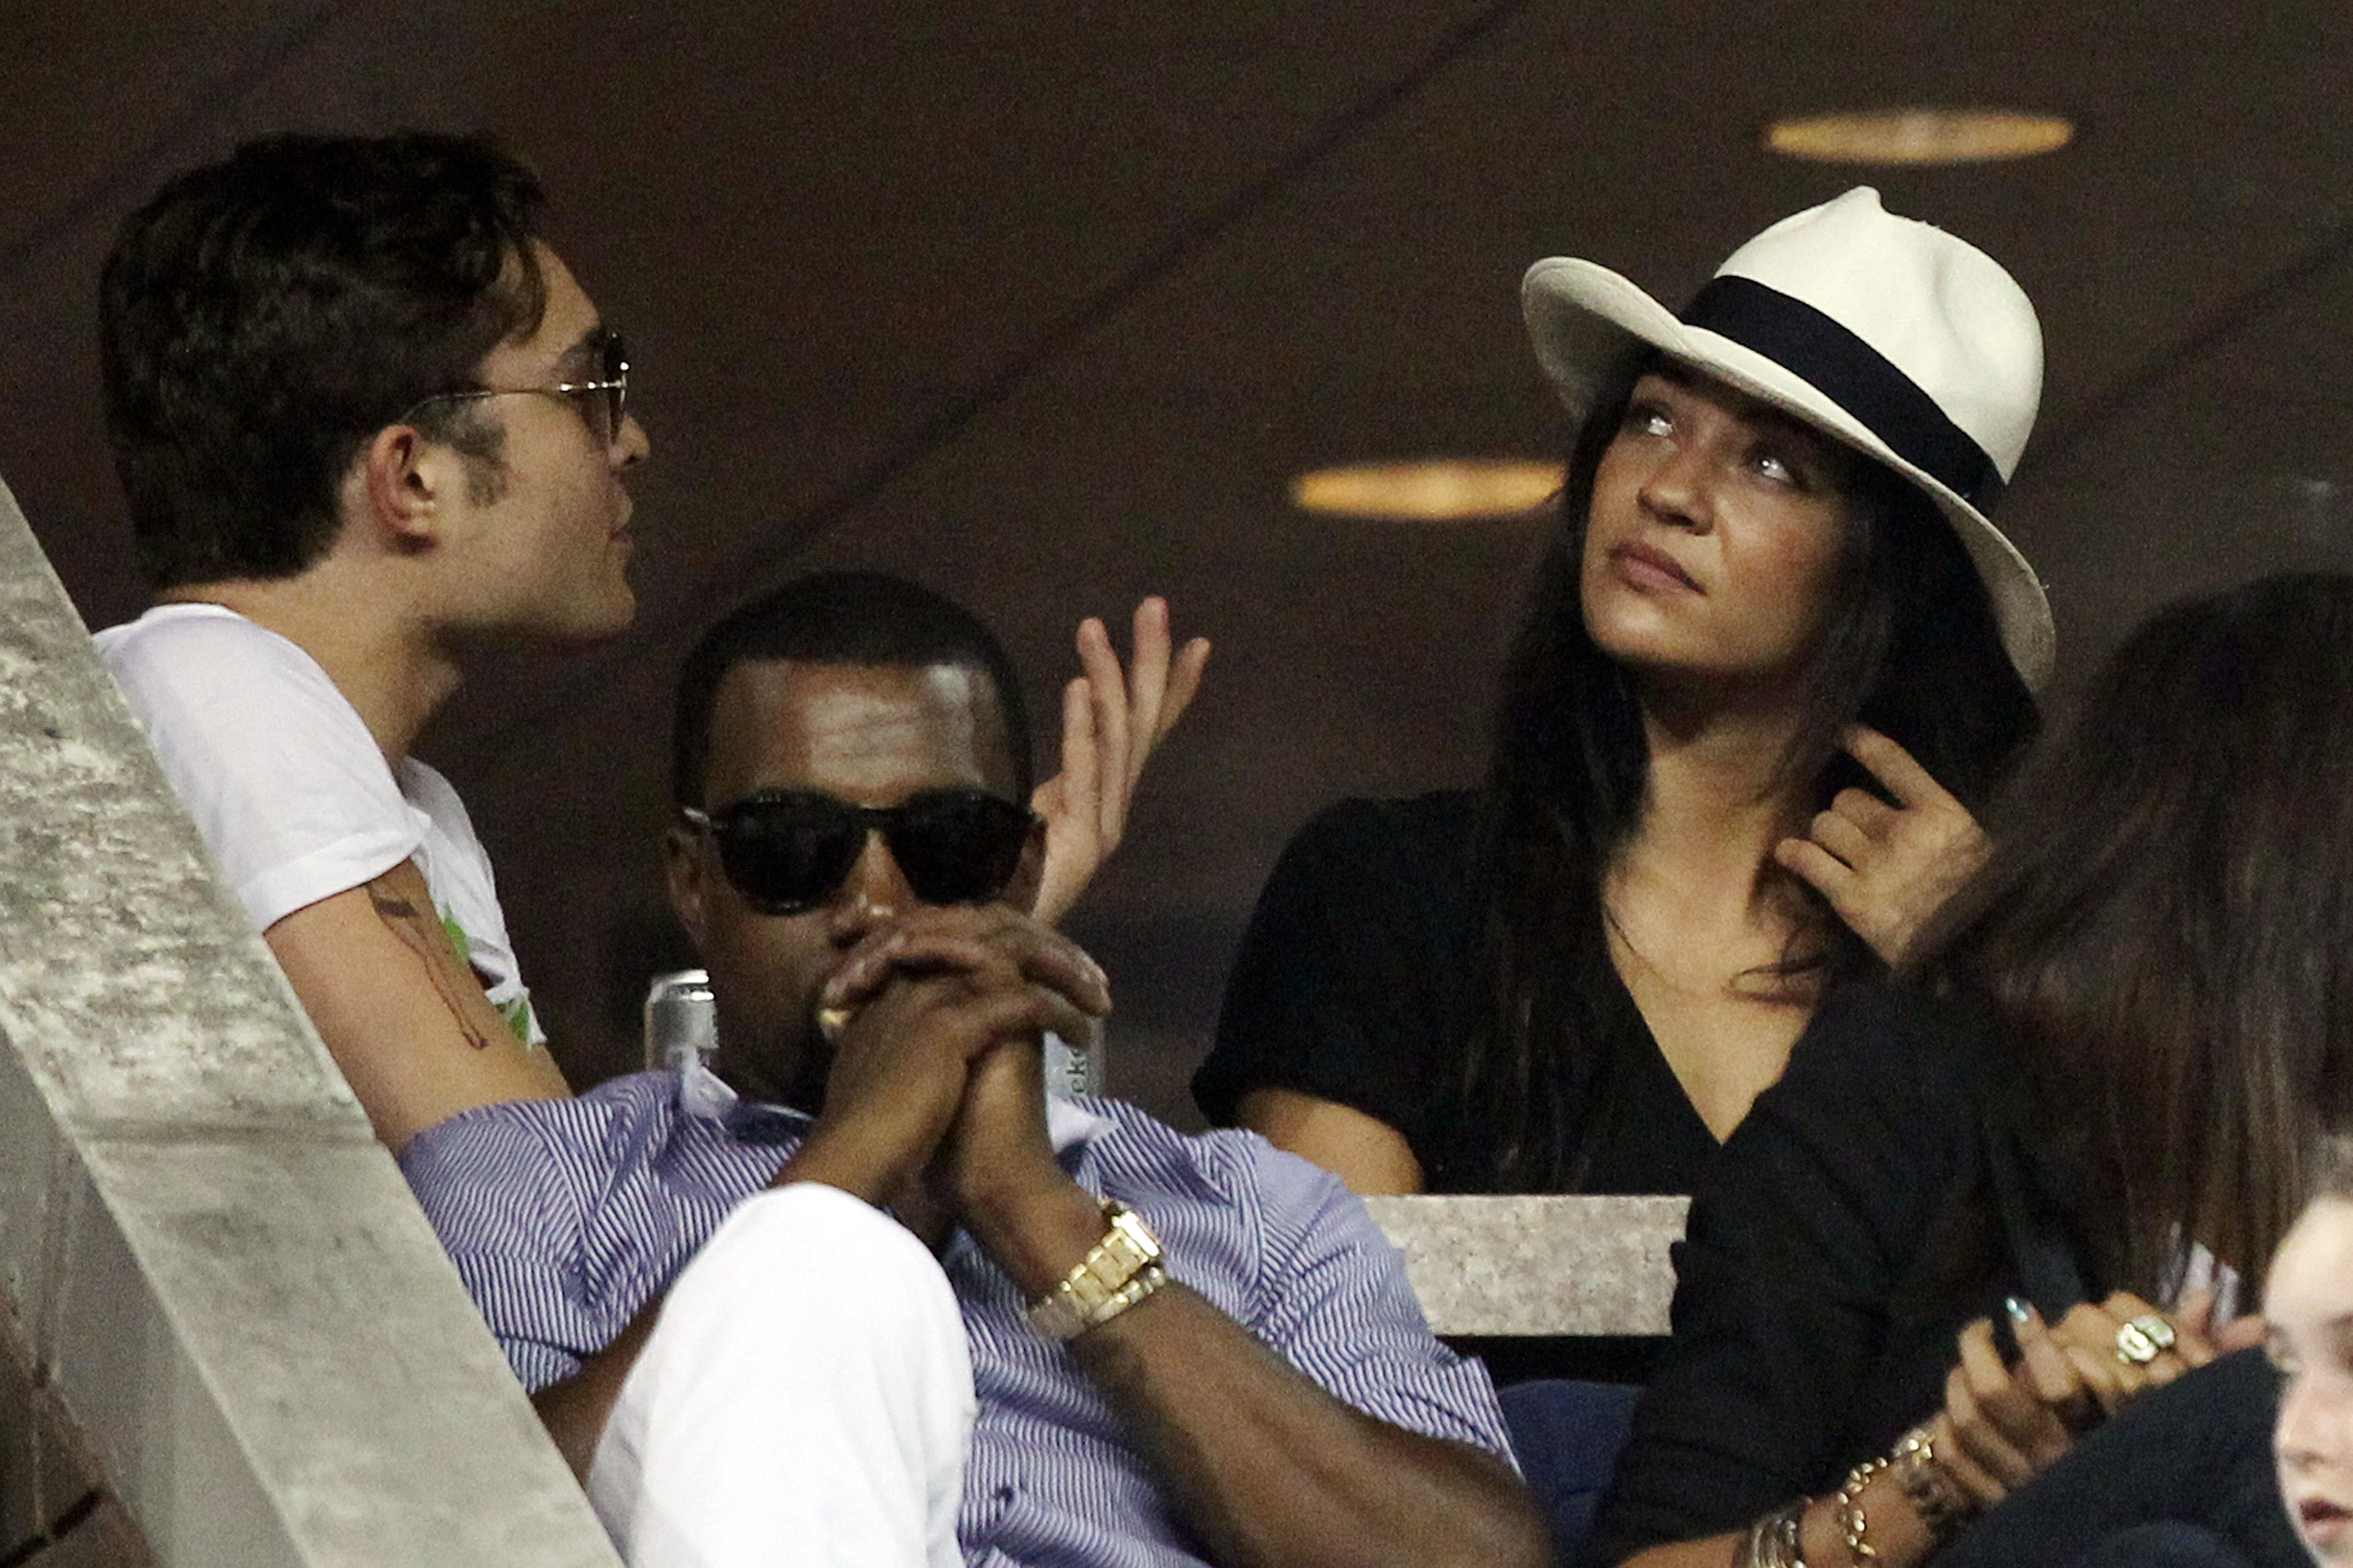 NEW YORK - SEPTEMBER 01:  (L-R) Rapper Kanye West and actress Jessica Szohr attend day three of the 2010 U.S. Open at the USTA Billie Jean King National Tennis Center on September 1, 2010 in the Flushing neighborhood of the Queens borough of New York City